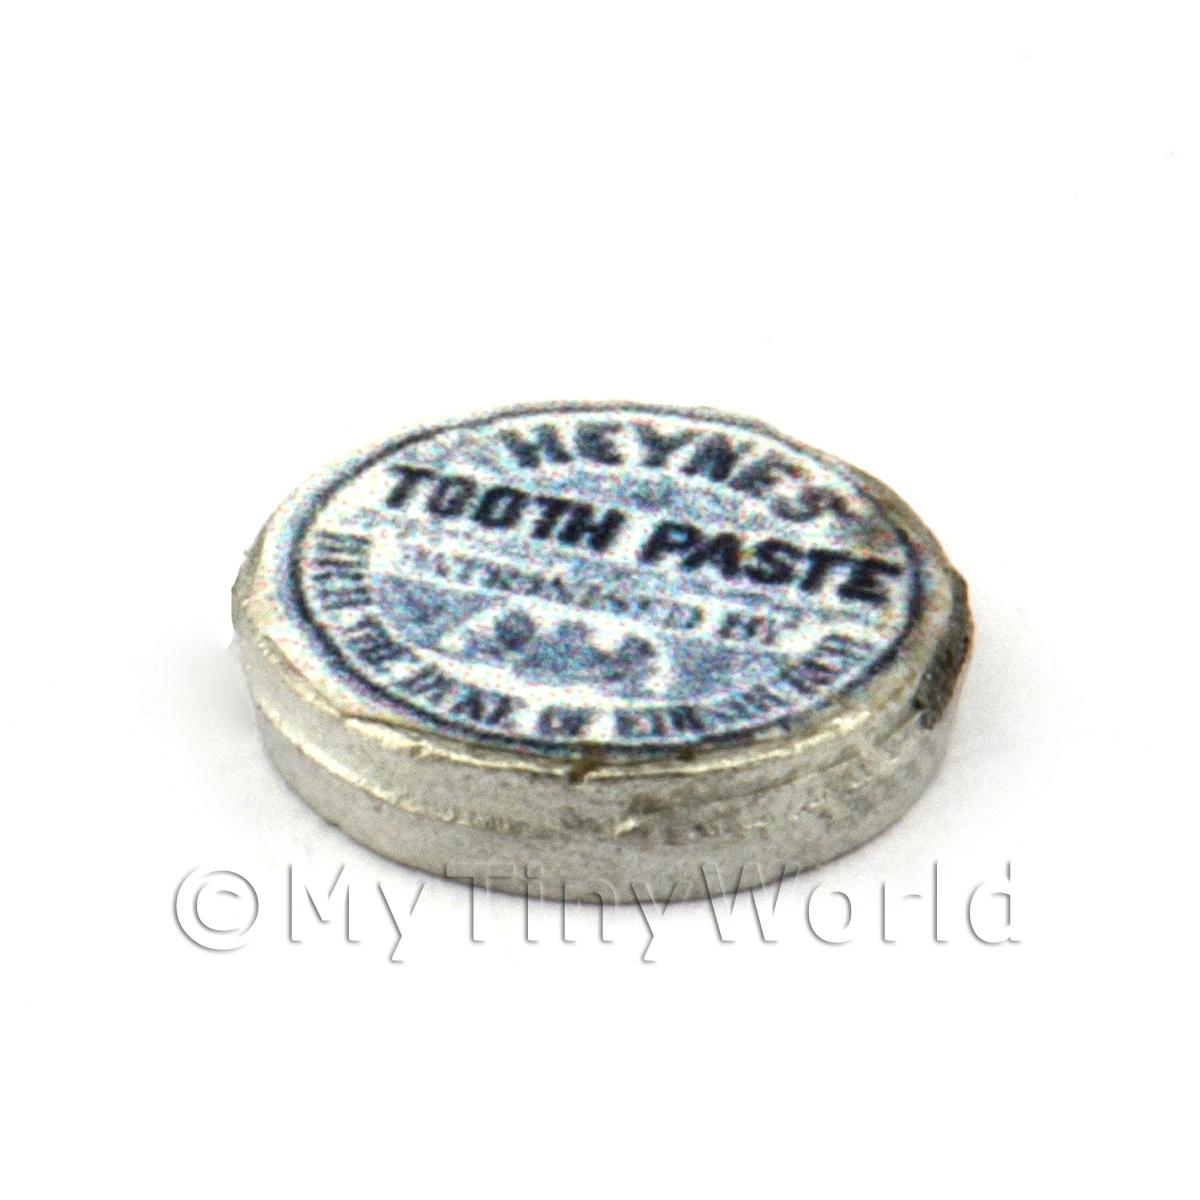 Dolls House Miniature Can Of Heynes Toothpaste